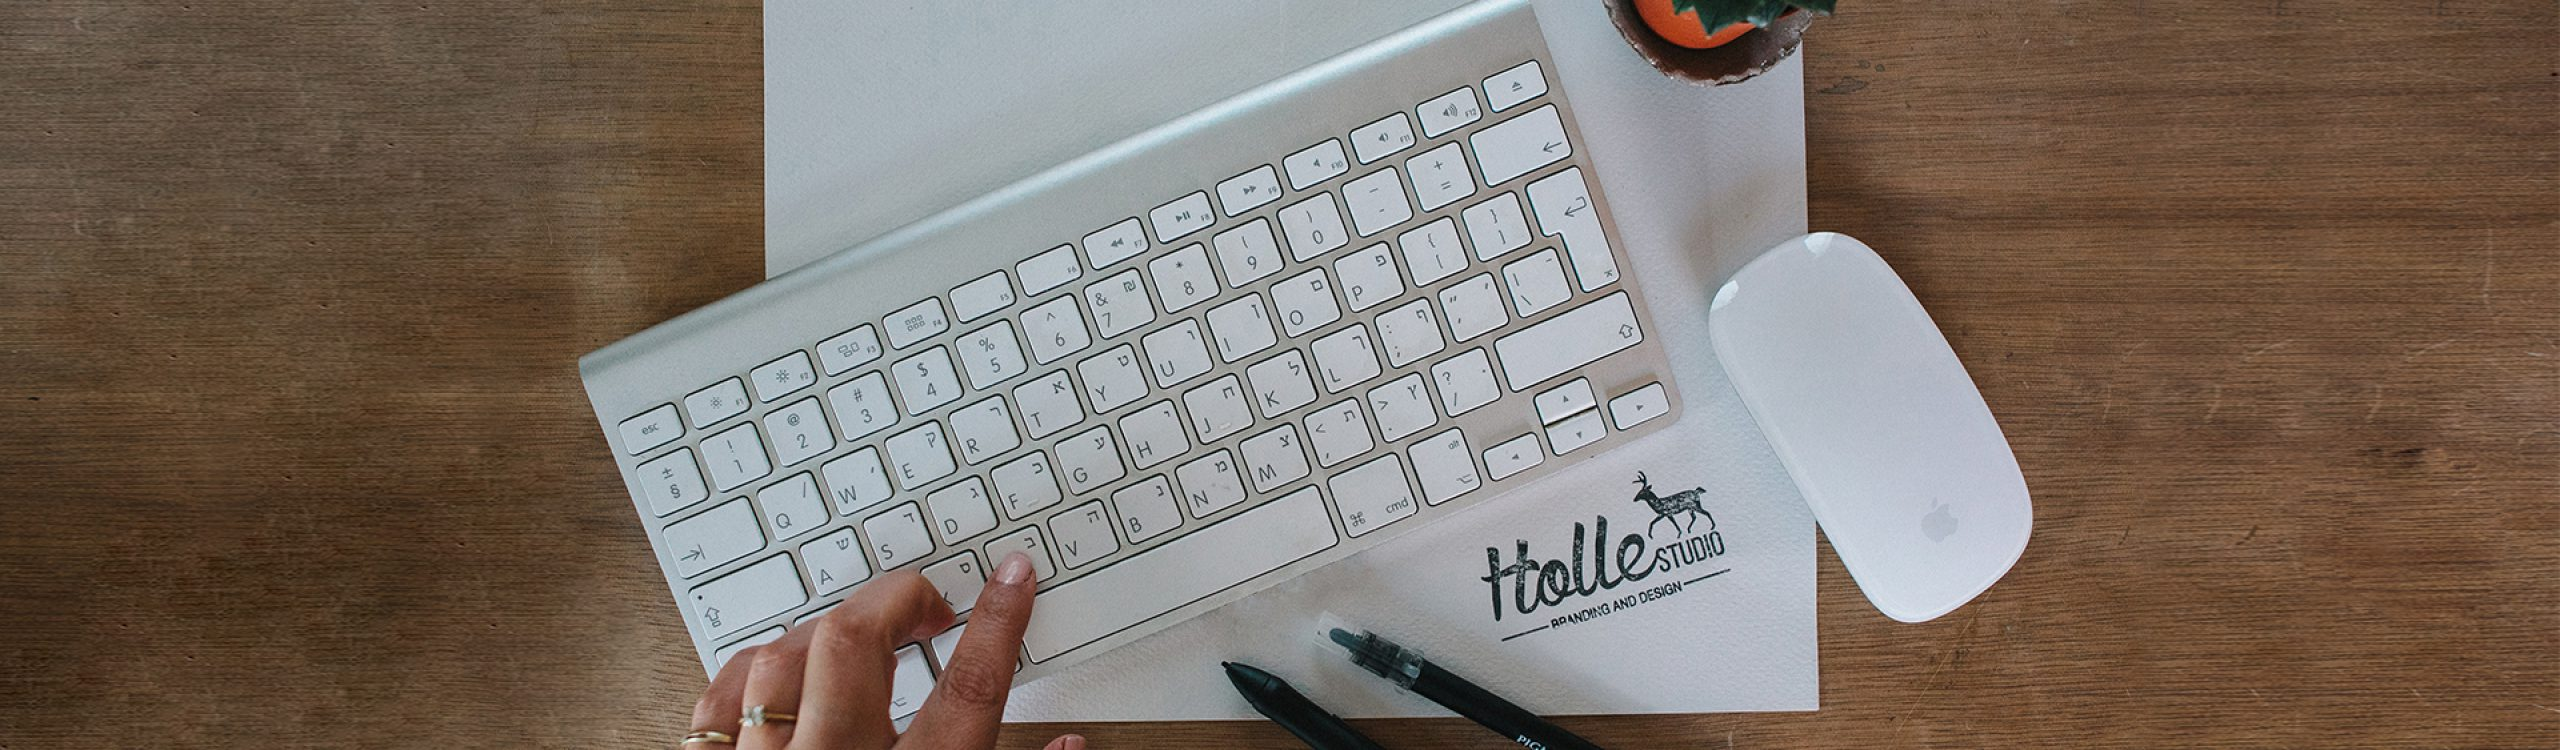 01_HOLLE